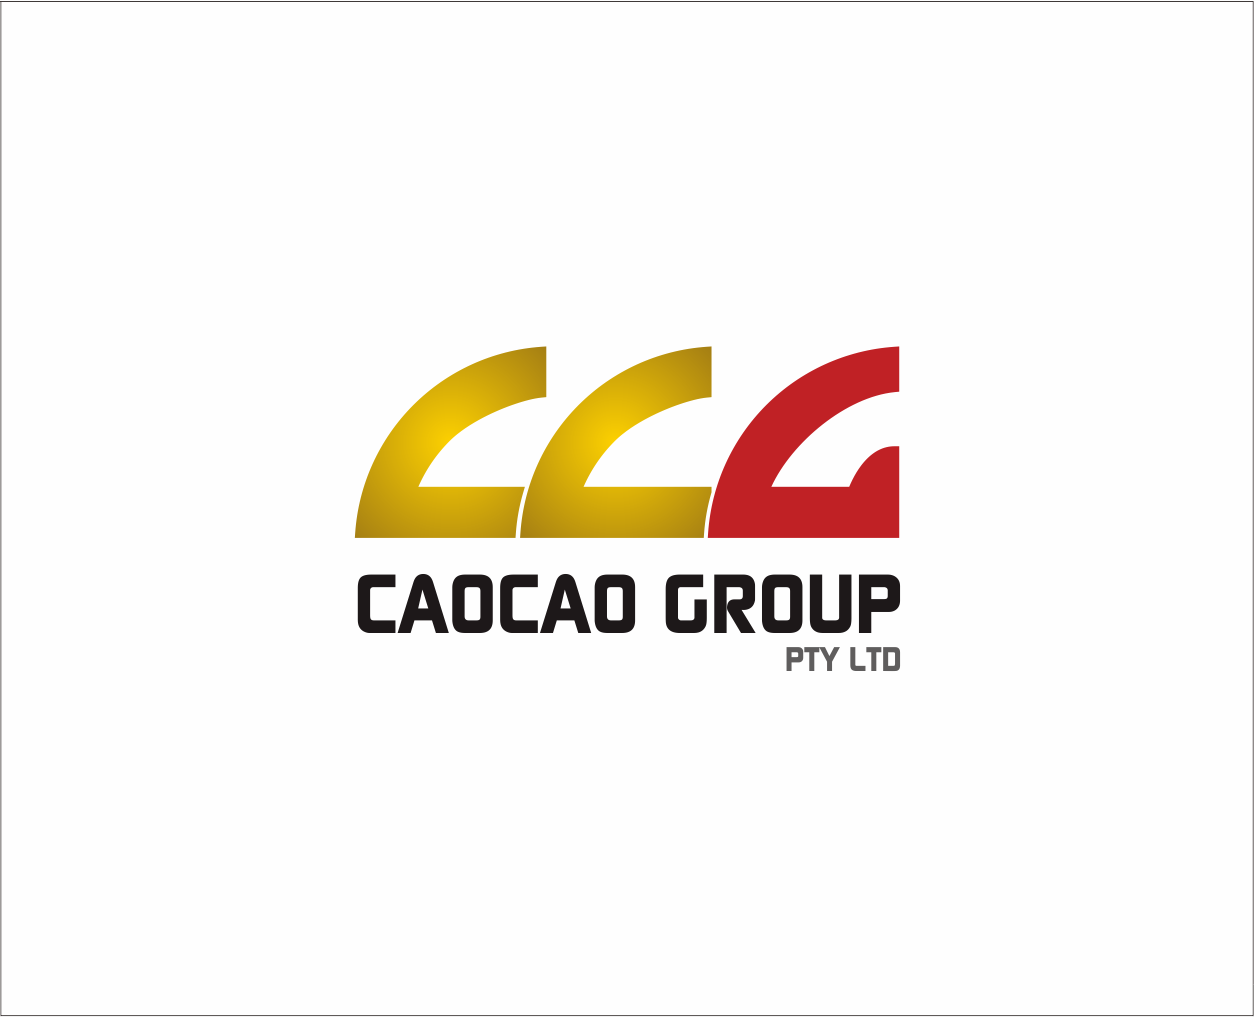 Logo Design by Armada Jamaluddin - Entry No. 110 in the Logo Design Contest cao cao group pty ltd Logo Design.